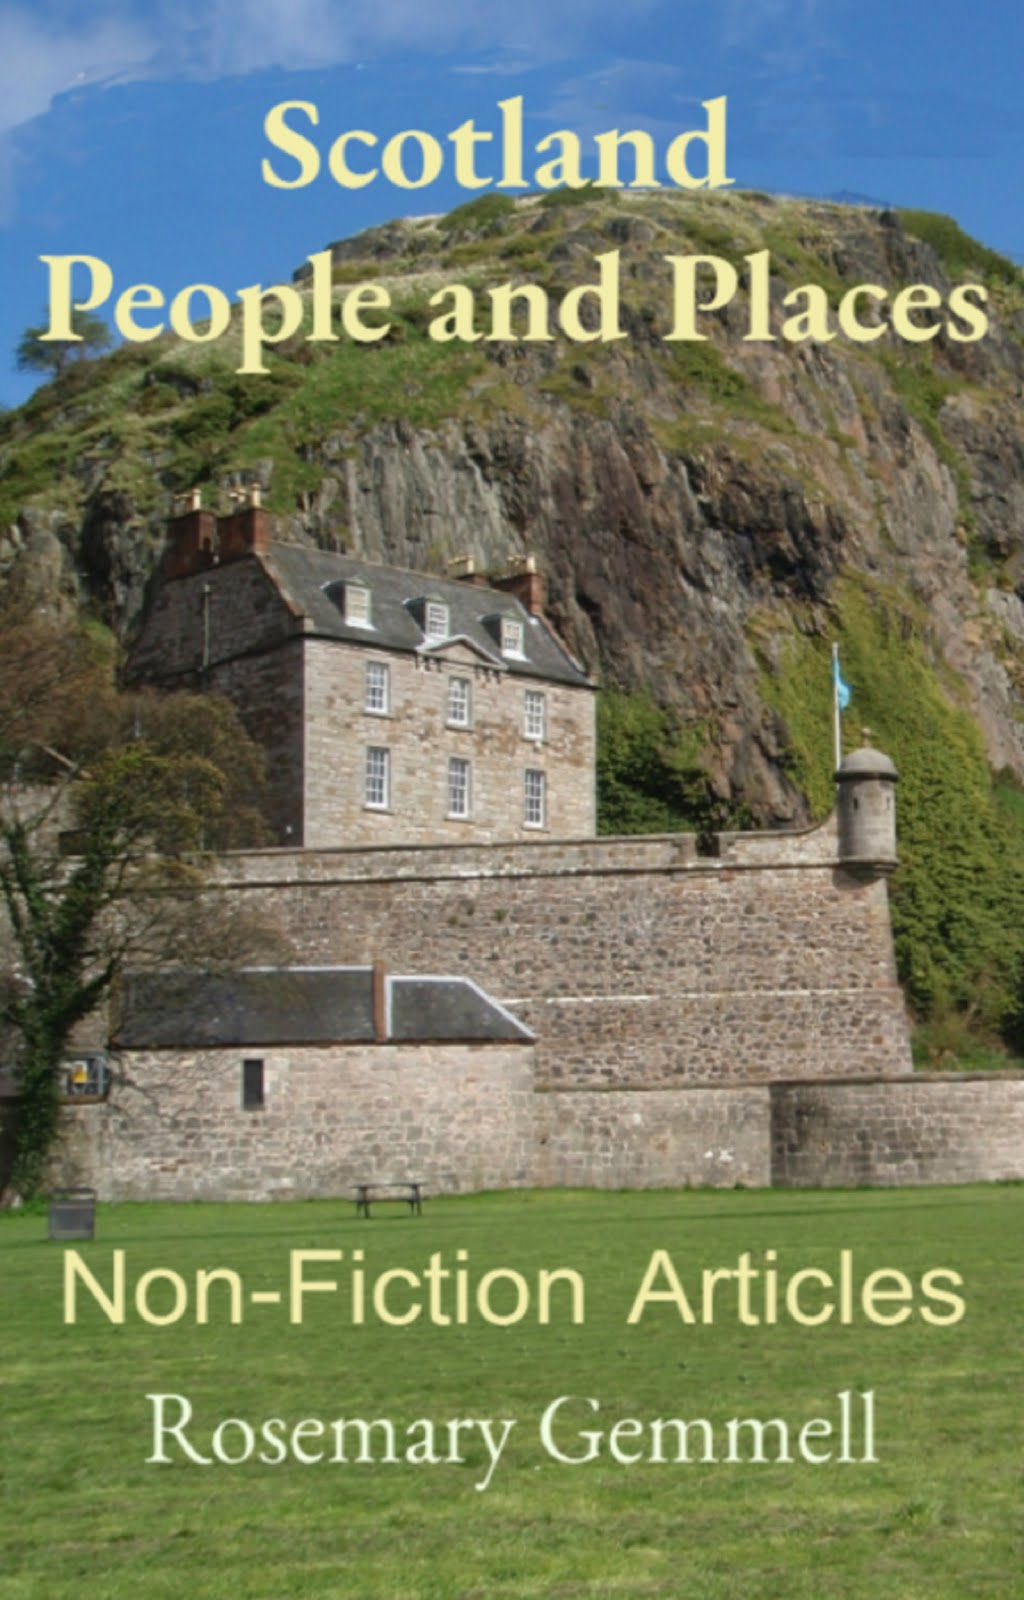 Scottish Non-fiction